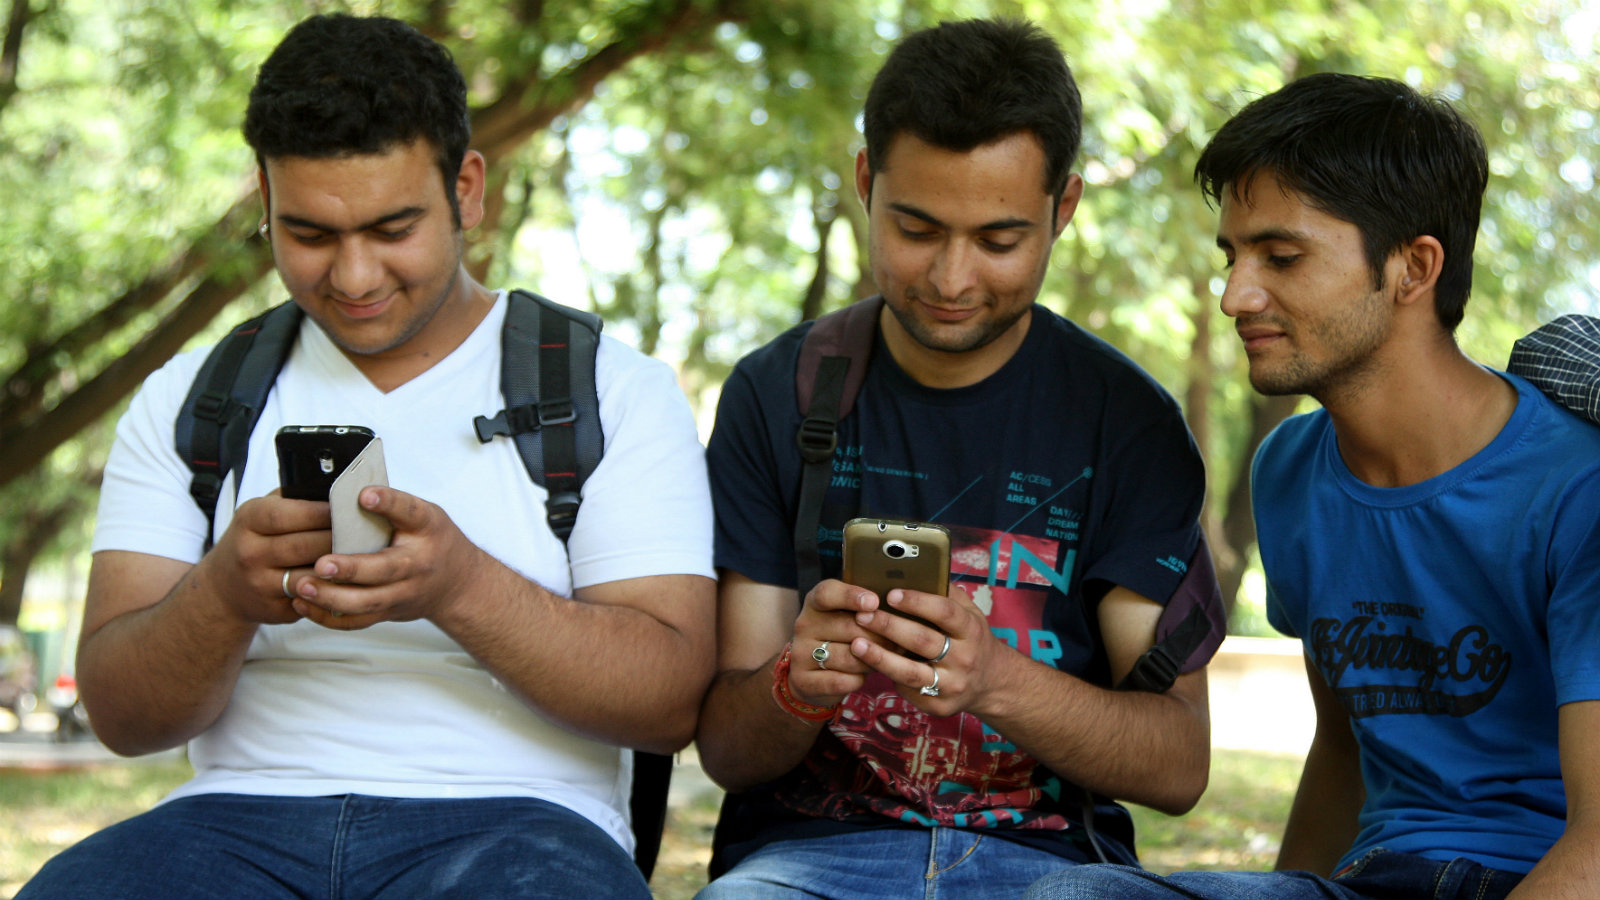 Indian students use their mobile phones to send a Short Message Service (SMS) on their prepaid cell phone in Jammu, the winter capital of Kashmir, India, 21 May 2014. Jammu and Kashmir government lifted the four year old ban on Short Messaging Services (SMS) on prepaid cell phone subscribers in the state. In June 2010, the State government had imposed a ban on the SMS in the State following a widespread unrest in the Kashmir valley, an official spokesman said.